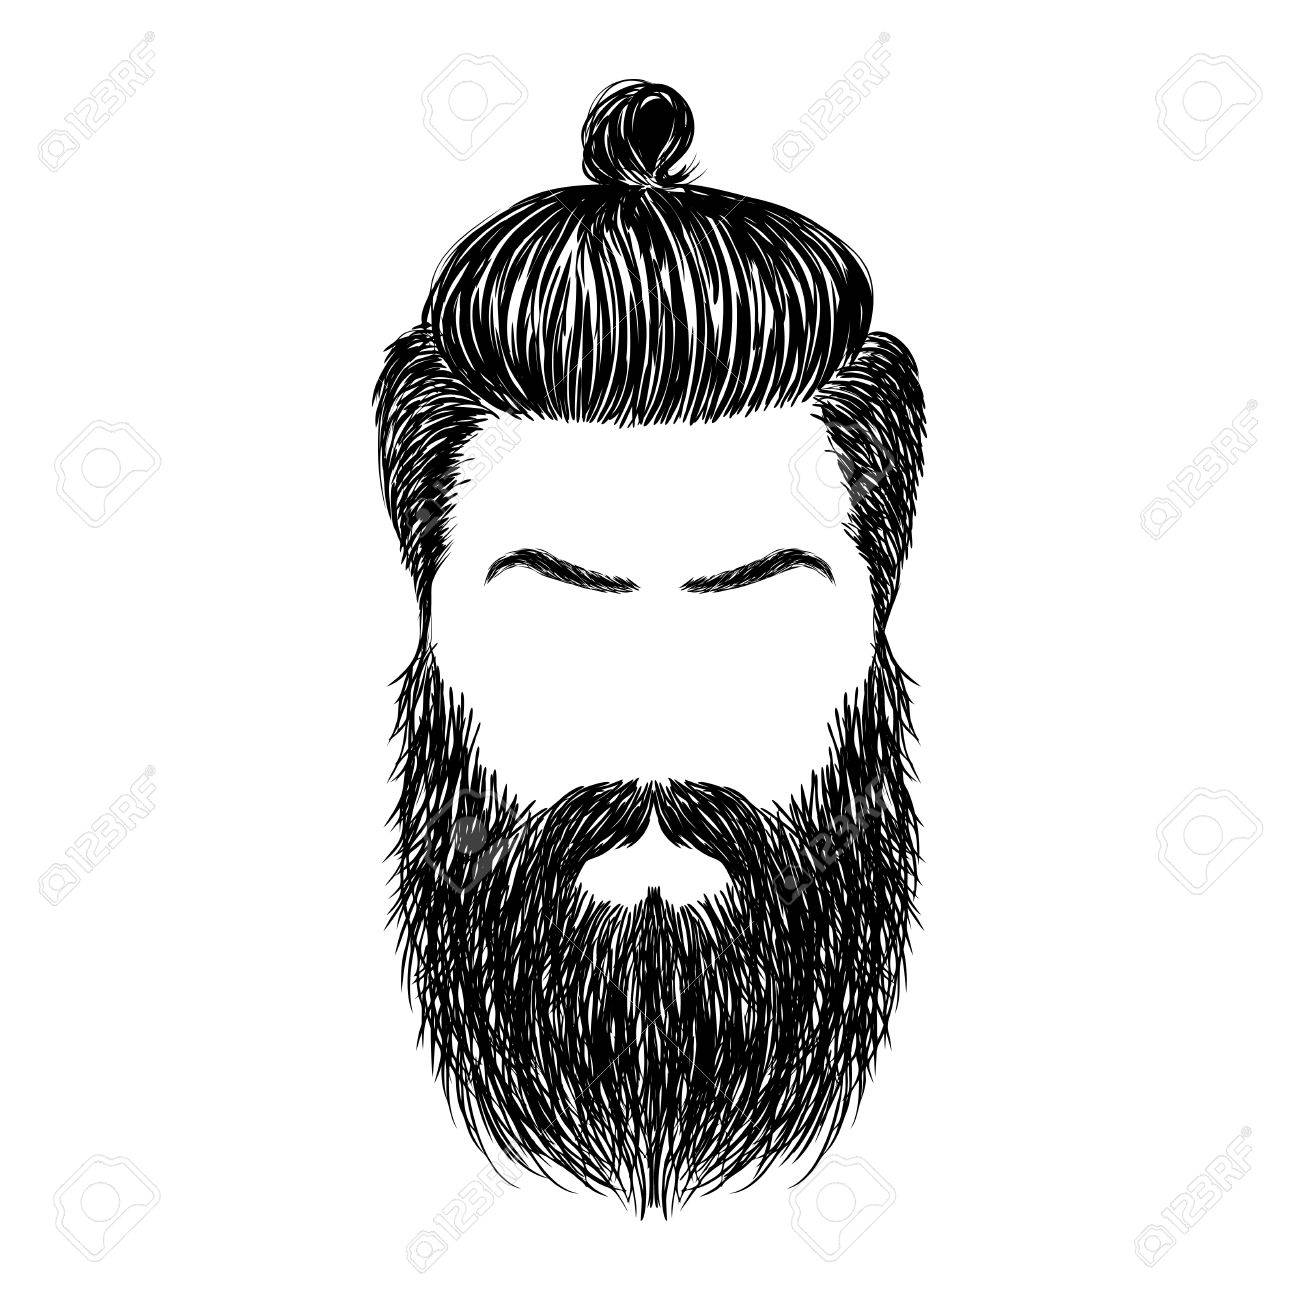 freeuse At paintingvalley com explore. Beard clipart sketch